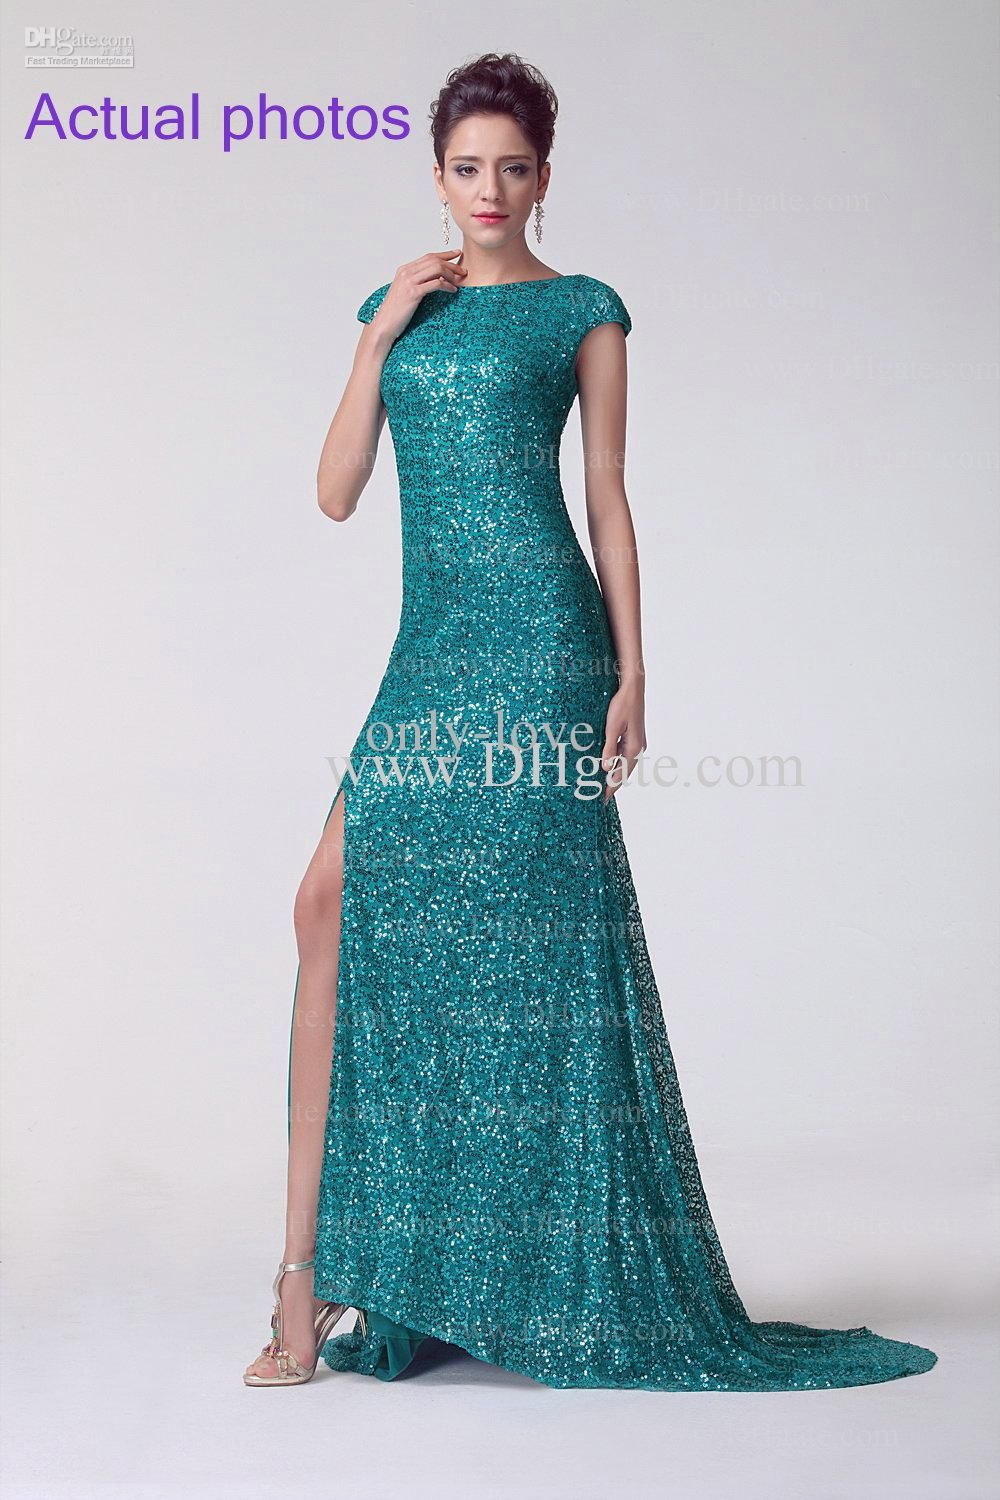 Wholesale prom dresses buy glaring hunter mermaid prom dresses